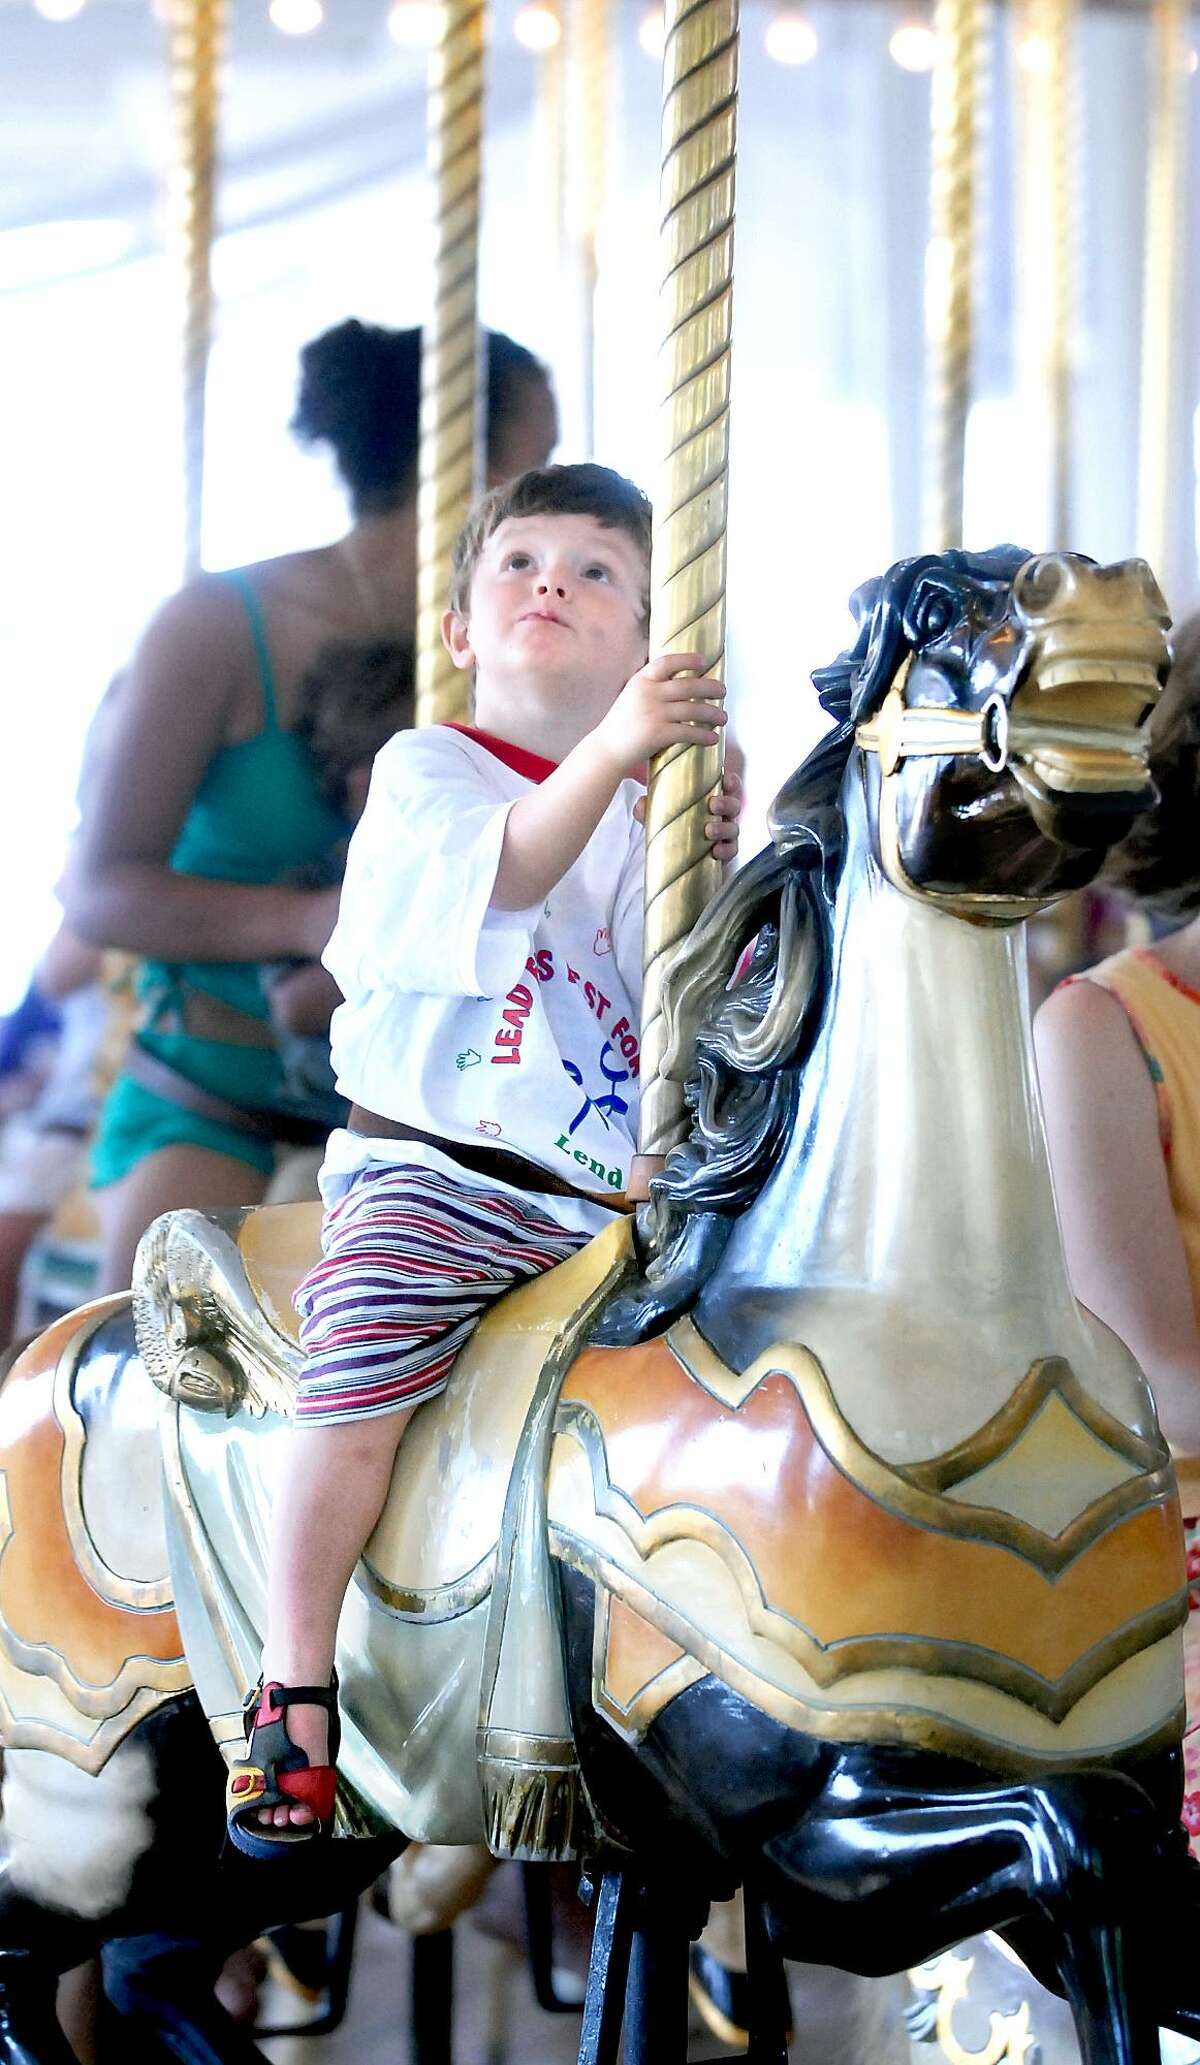 A child rides the carousel at Lighthouse Point Park in New Haven during a Lead Awareness Picnic.